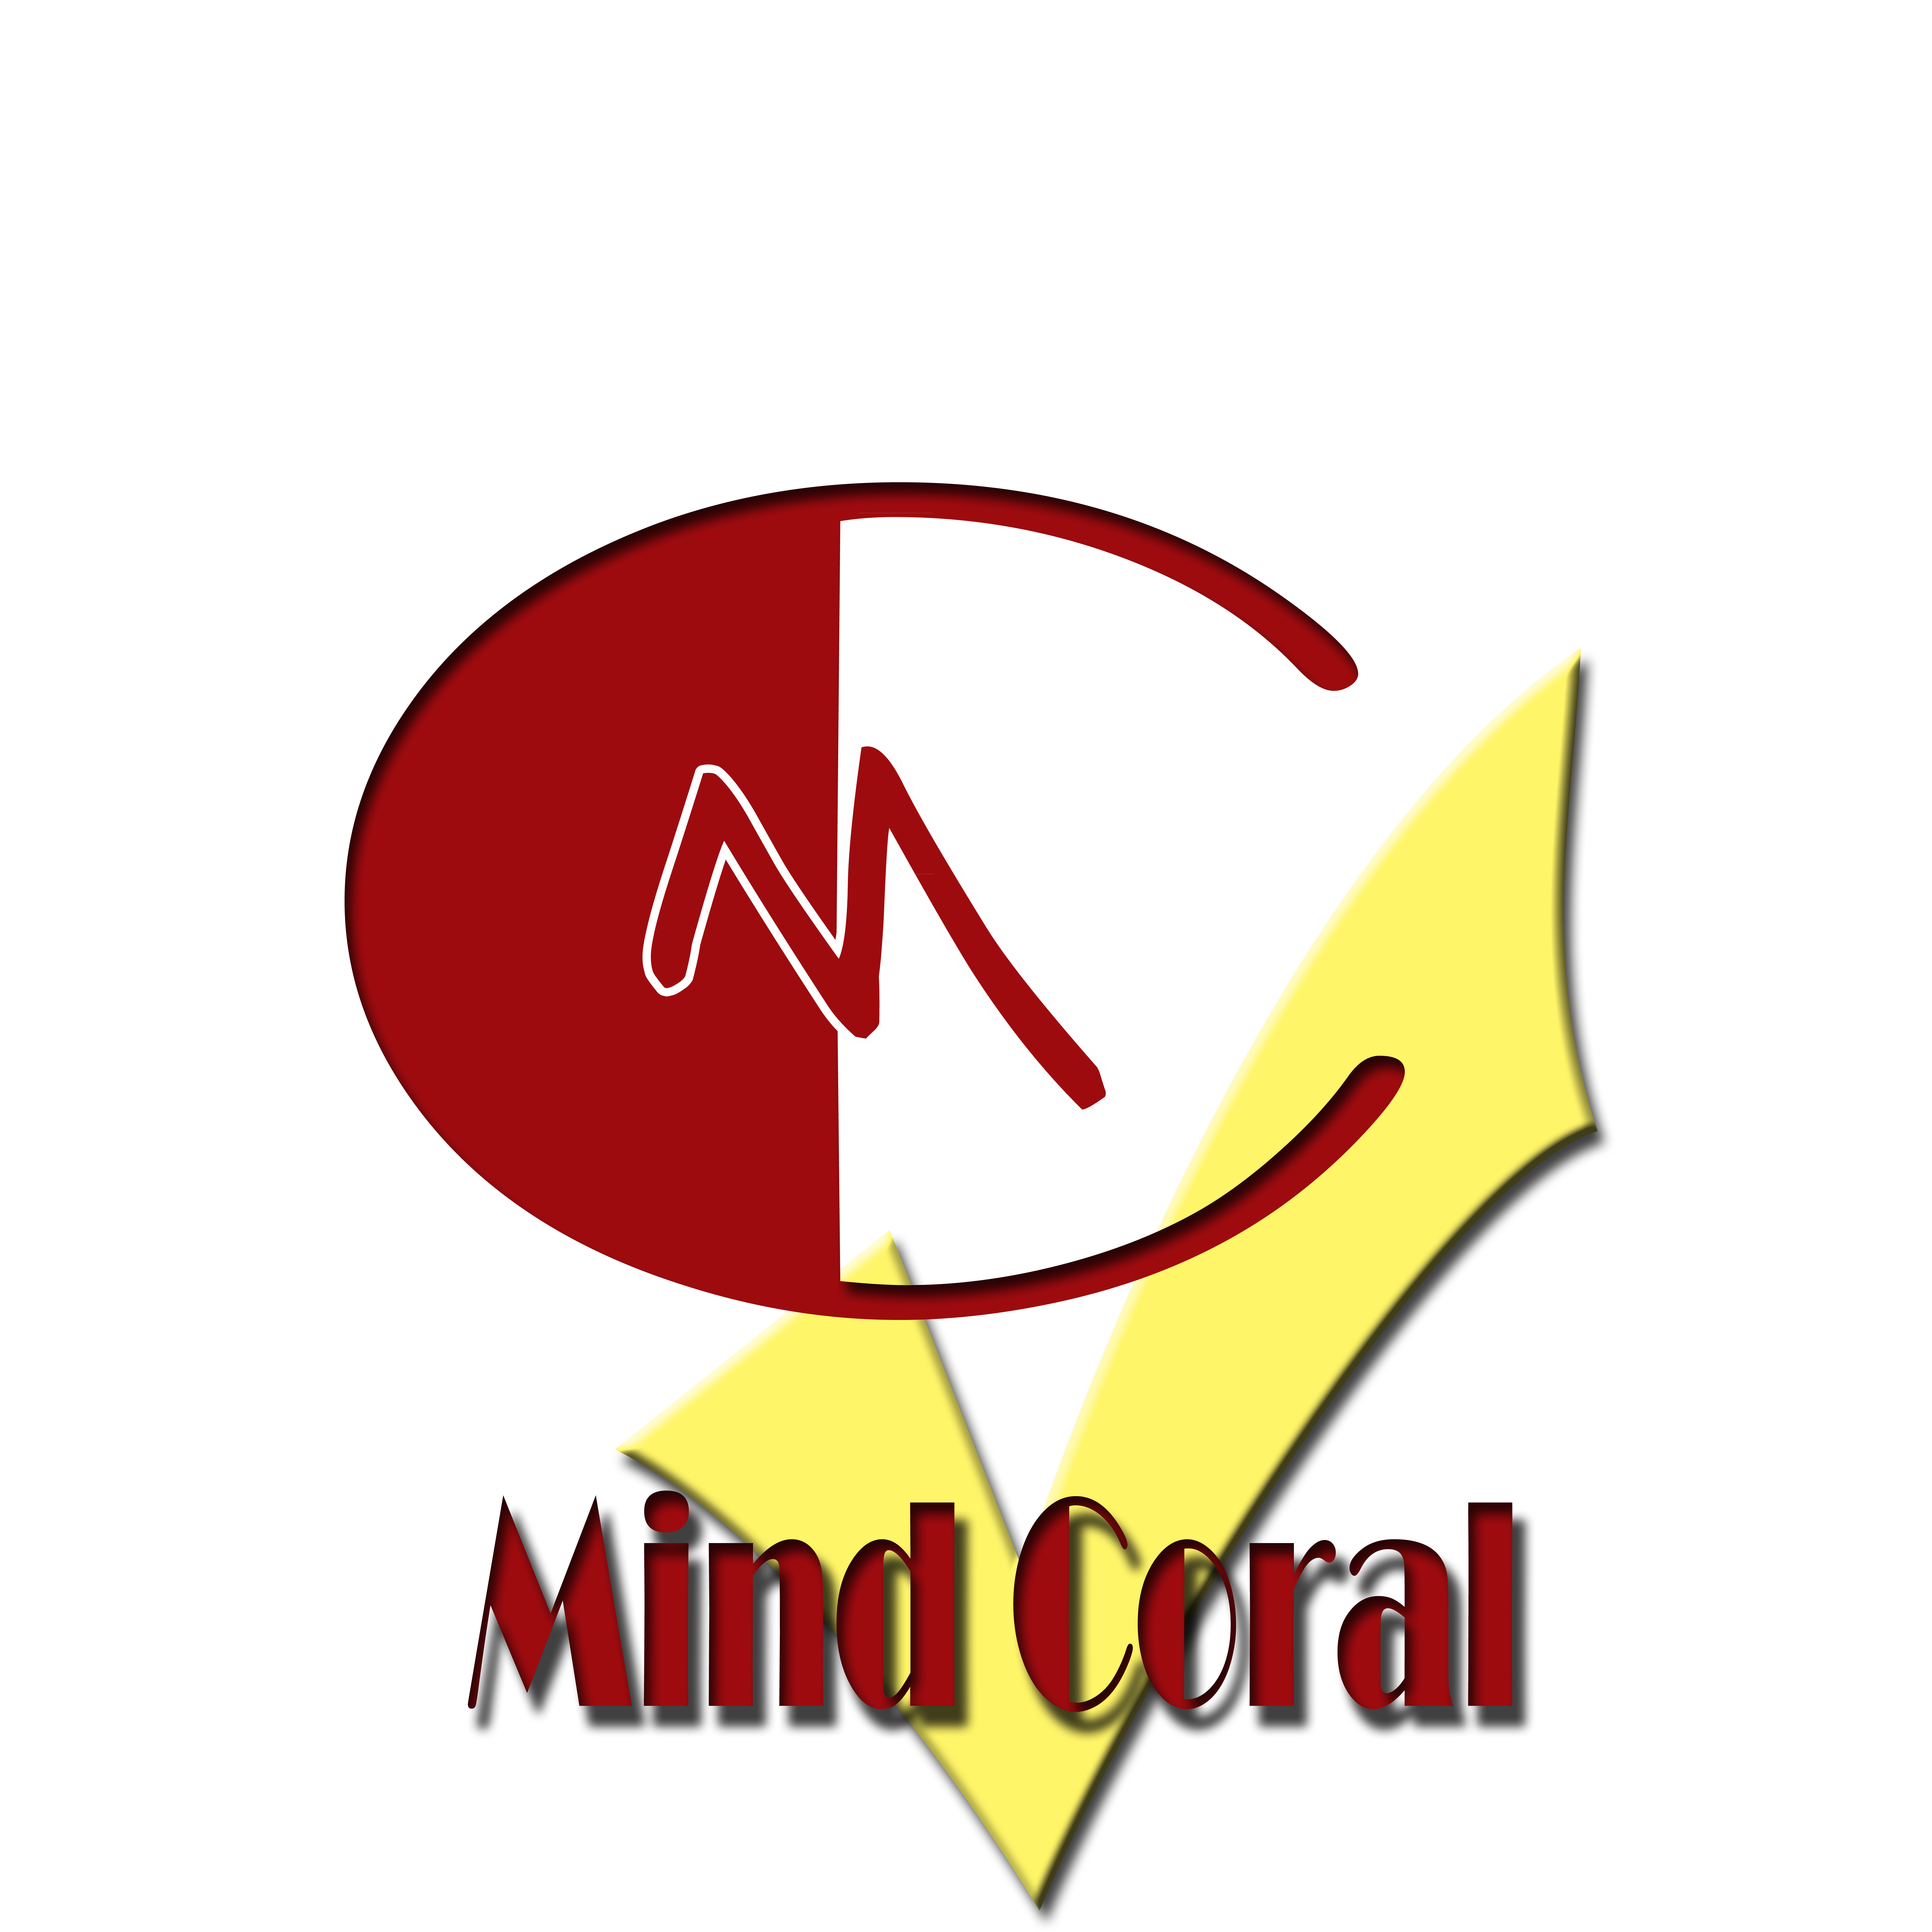 Logo Design by thomsrq - Entry No. 92 in the Logo Design Contest Logo Design Needed for Exciting New Company MindCoral.